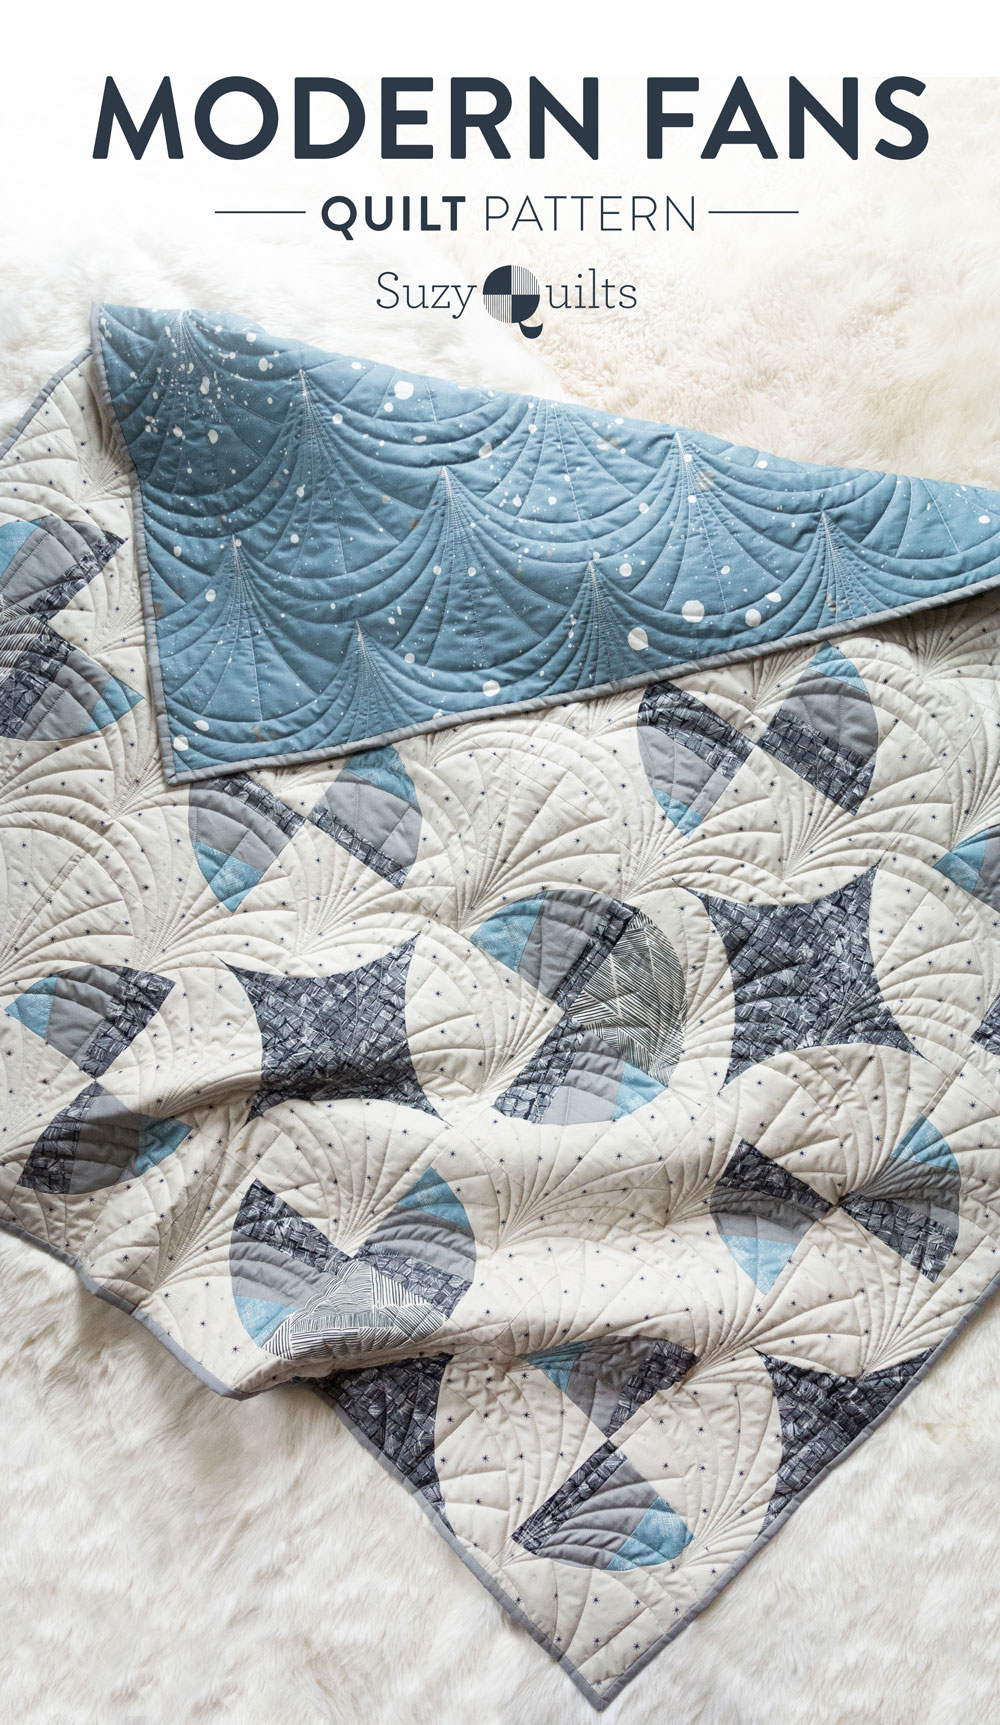 This Great Gatsby inspired Modern Fans quilt kit uses icy blues, grays and metallic silver fabric to bring elegance and pizzazz to a cozy quilt. suzyquilts.com #quiltpattern #artdecoquilt #modernfansquilt